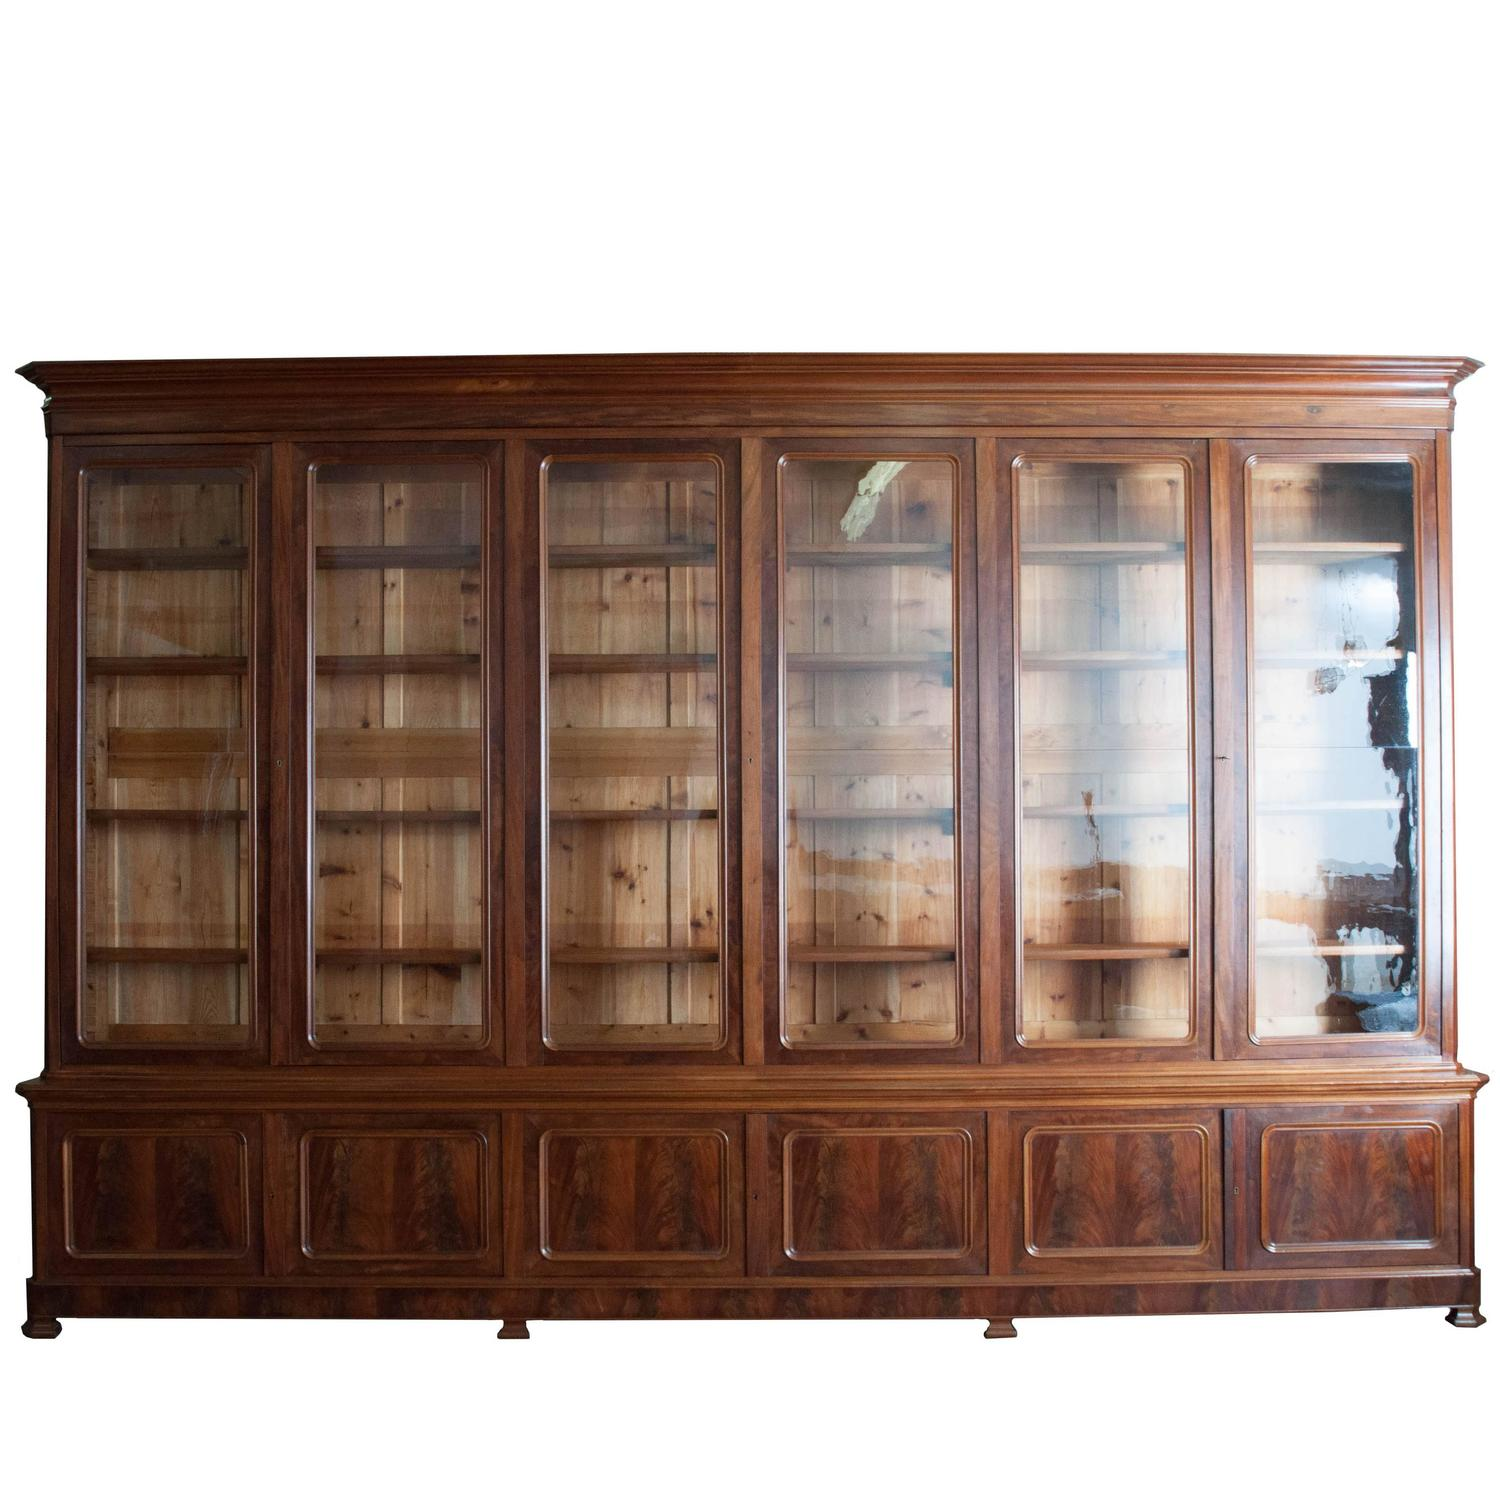 Grand french 19th century louis philippe mahogany bibliotheque at 1stdibs - Bibliotheque 9 cases ...